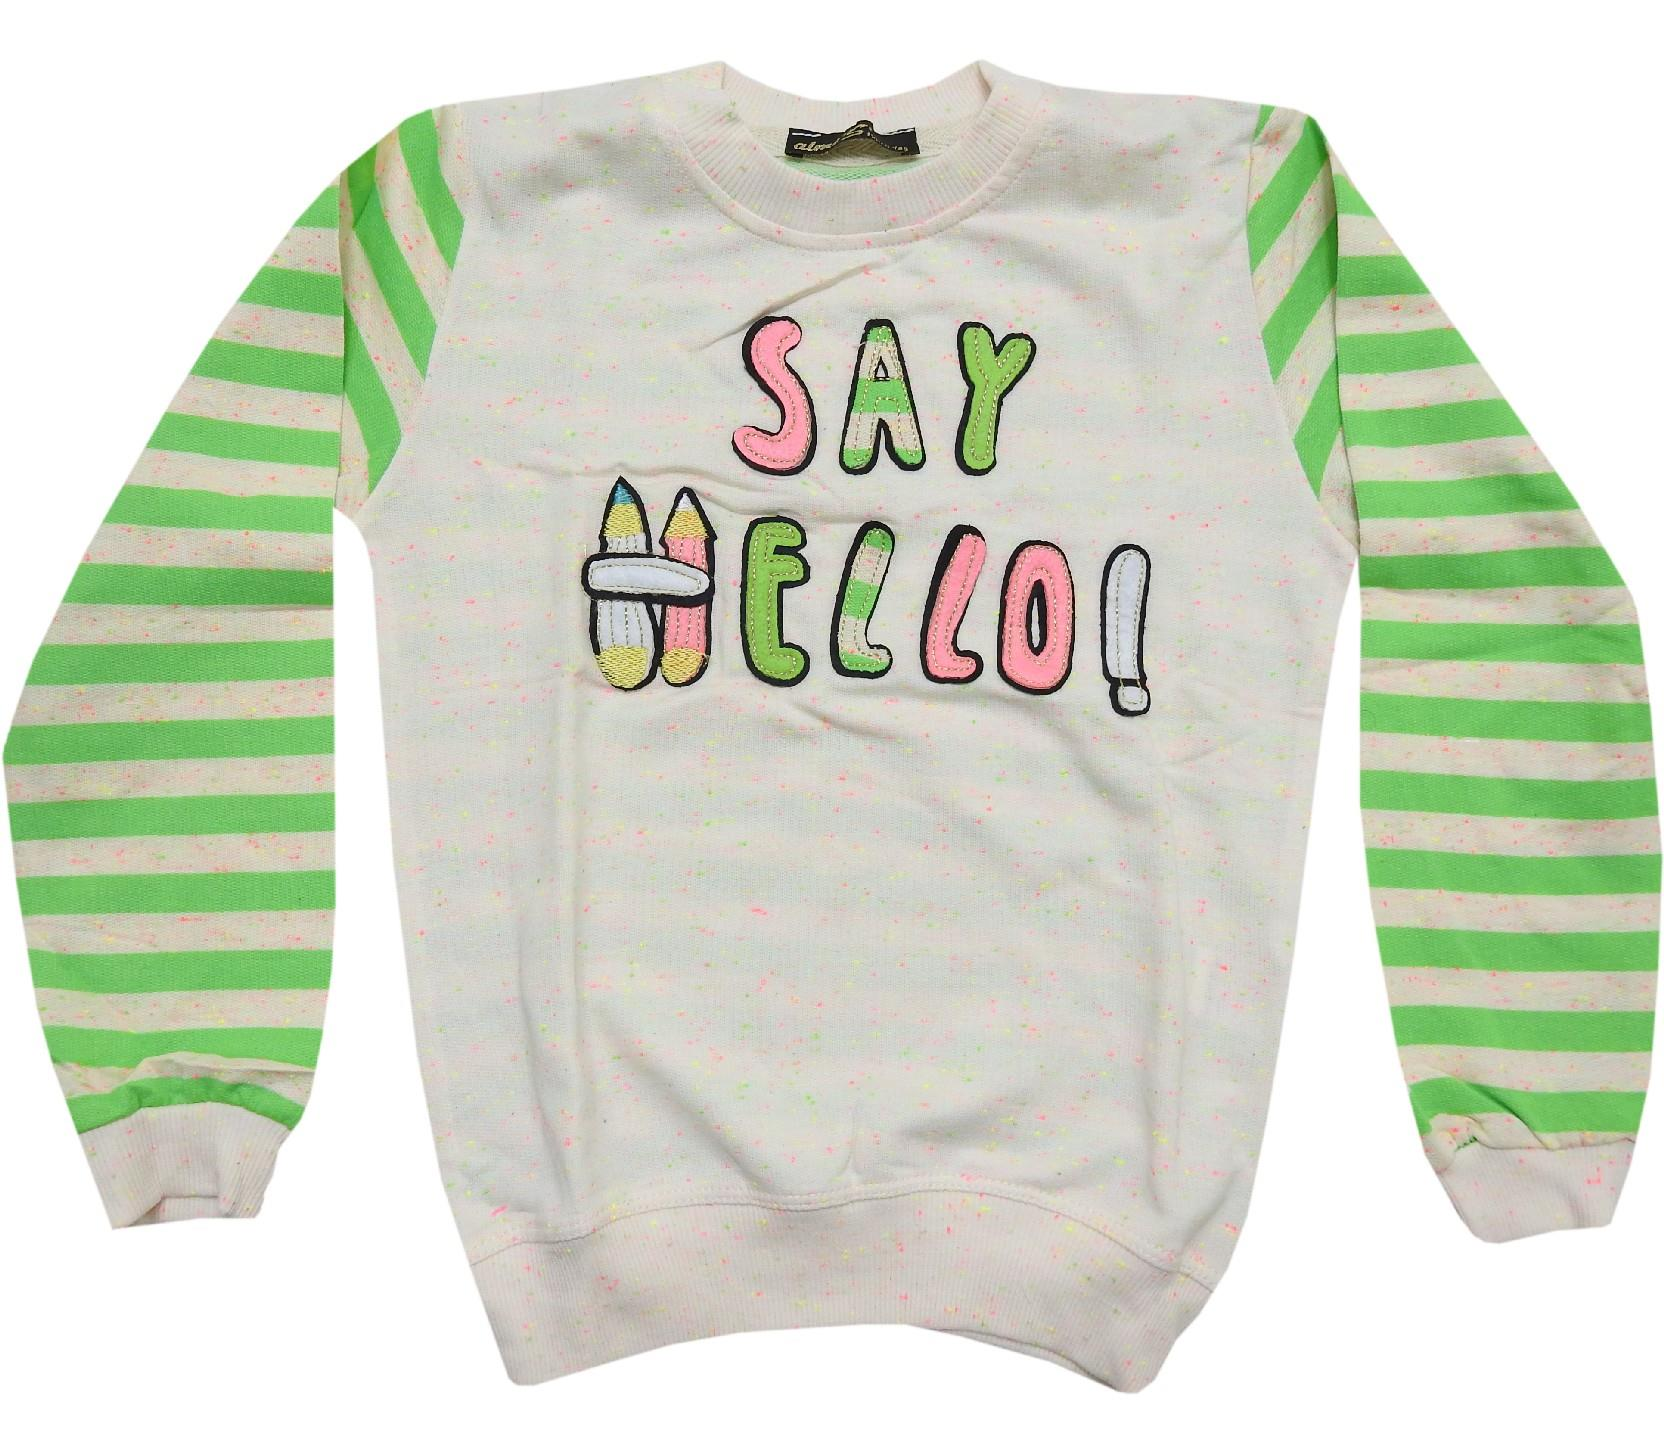 67625 wholesale say hello printed sweat for kids (5-6-7-8-9 age)